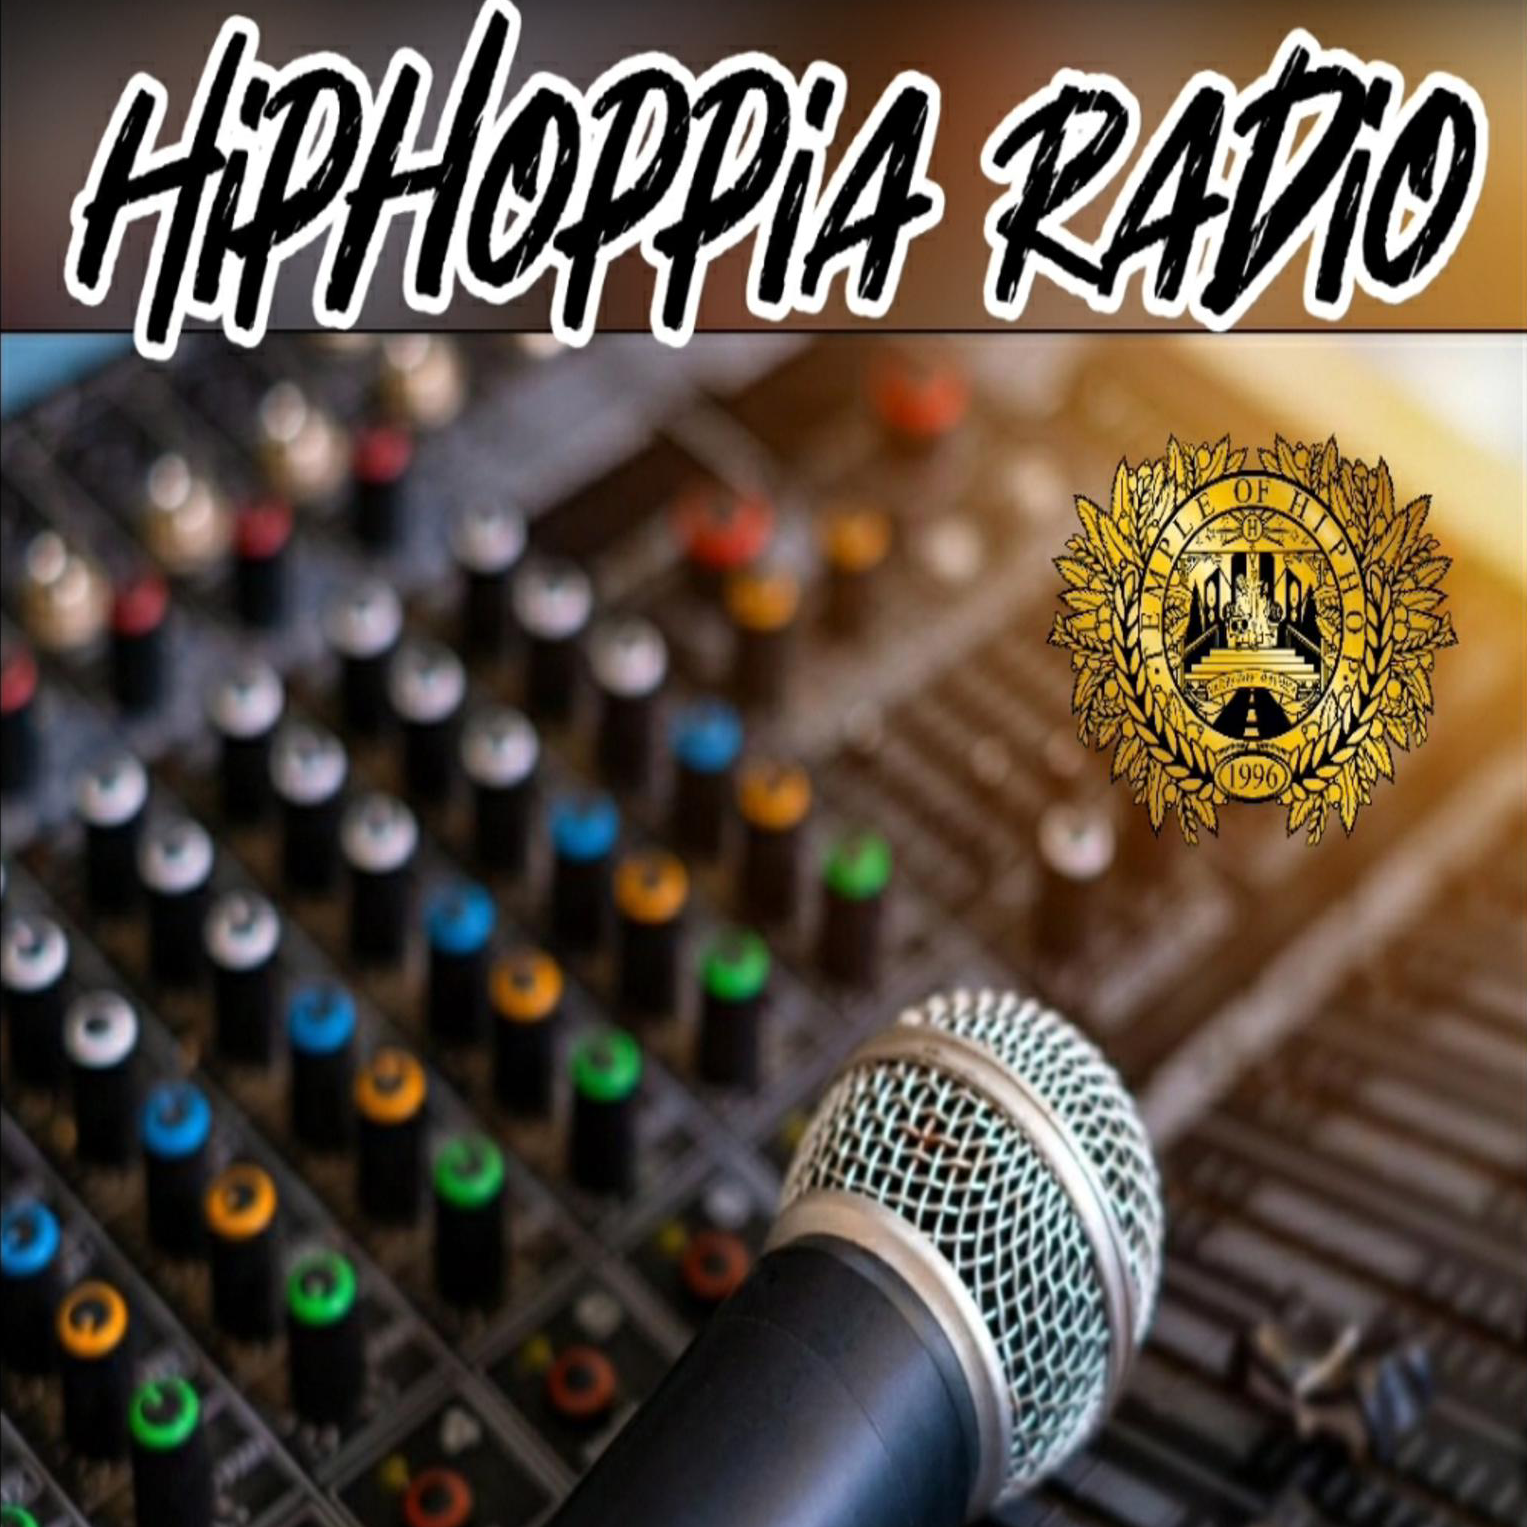 HIPHOP CITY RADIO